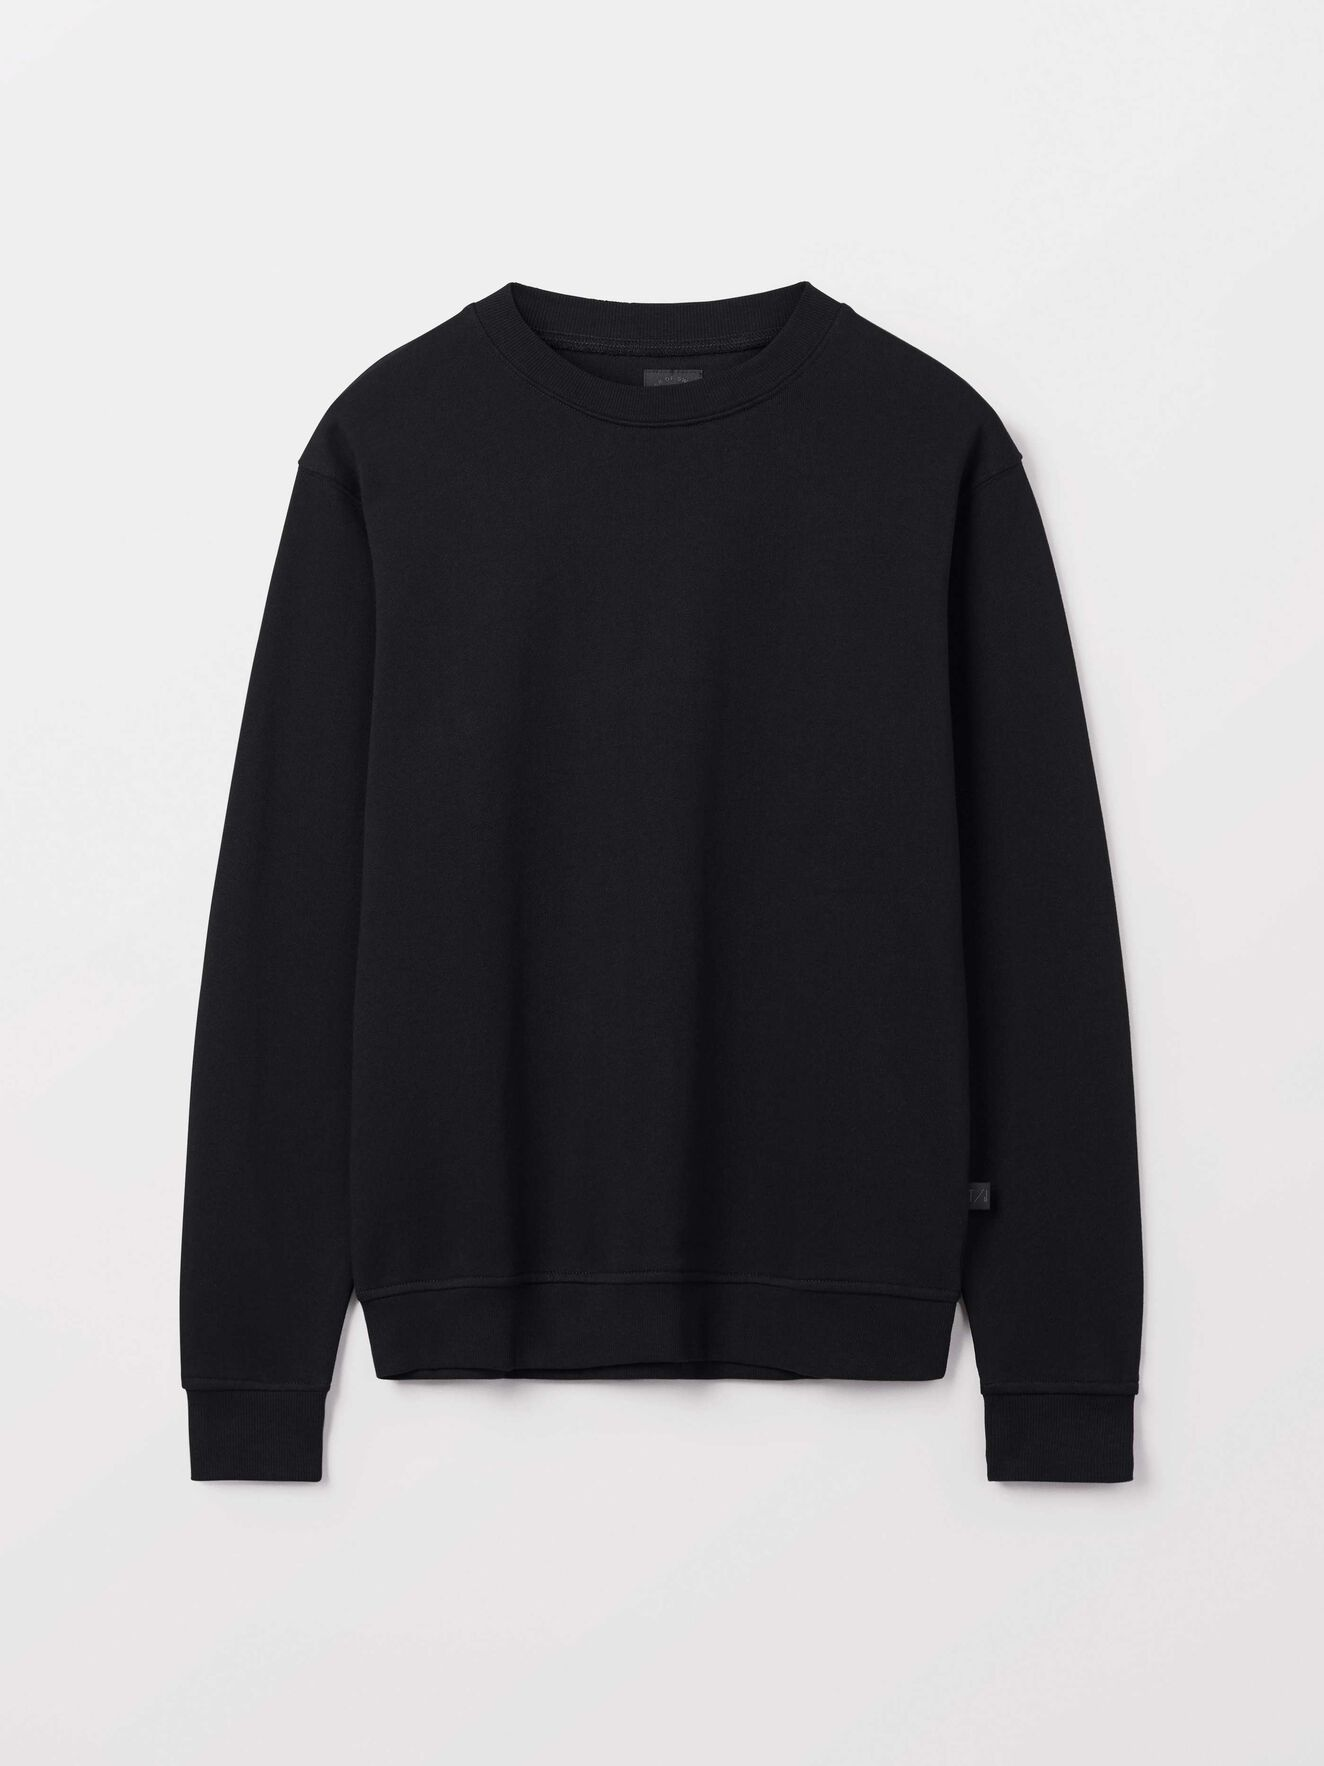 Tana Sweatshirt in Black from Tiger of Sweden